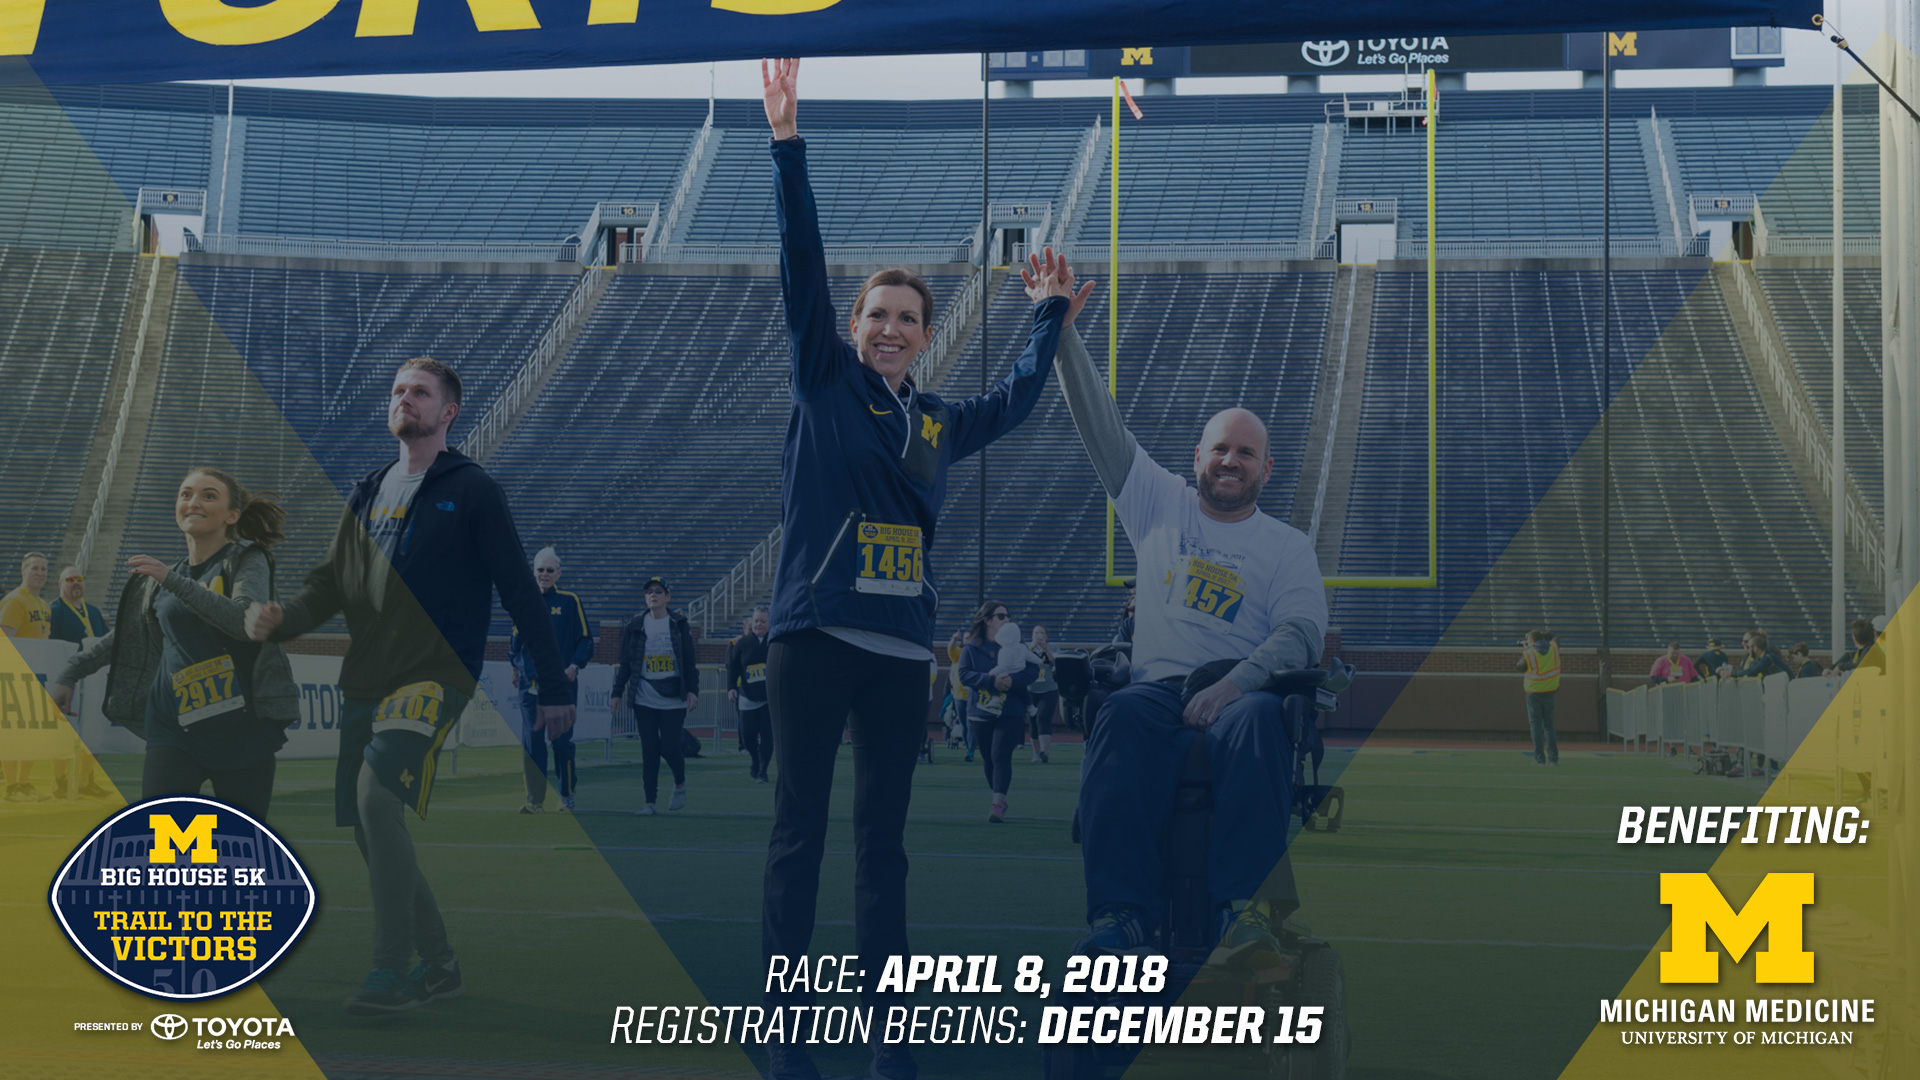 Big House 5K Trail to the Victors Presented by Toyota